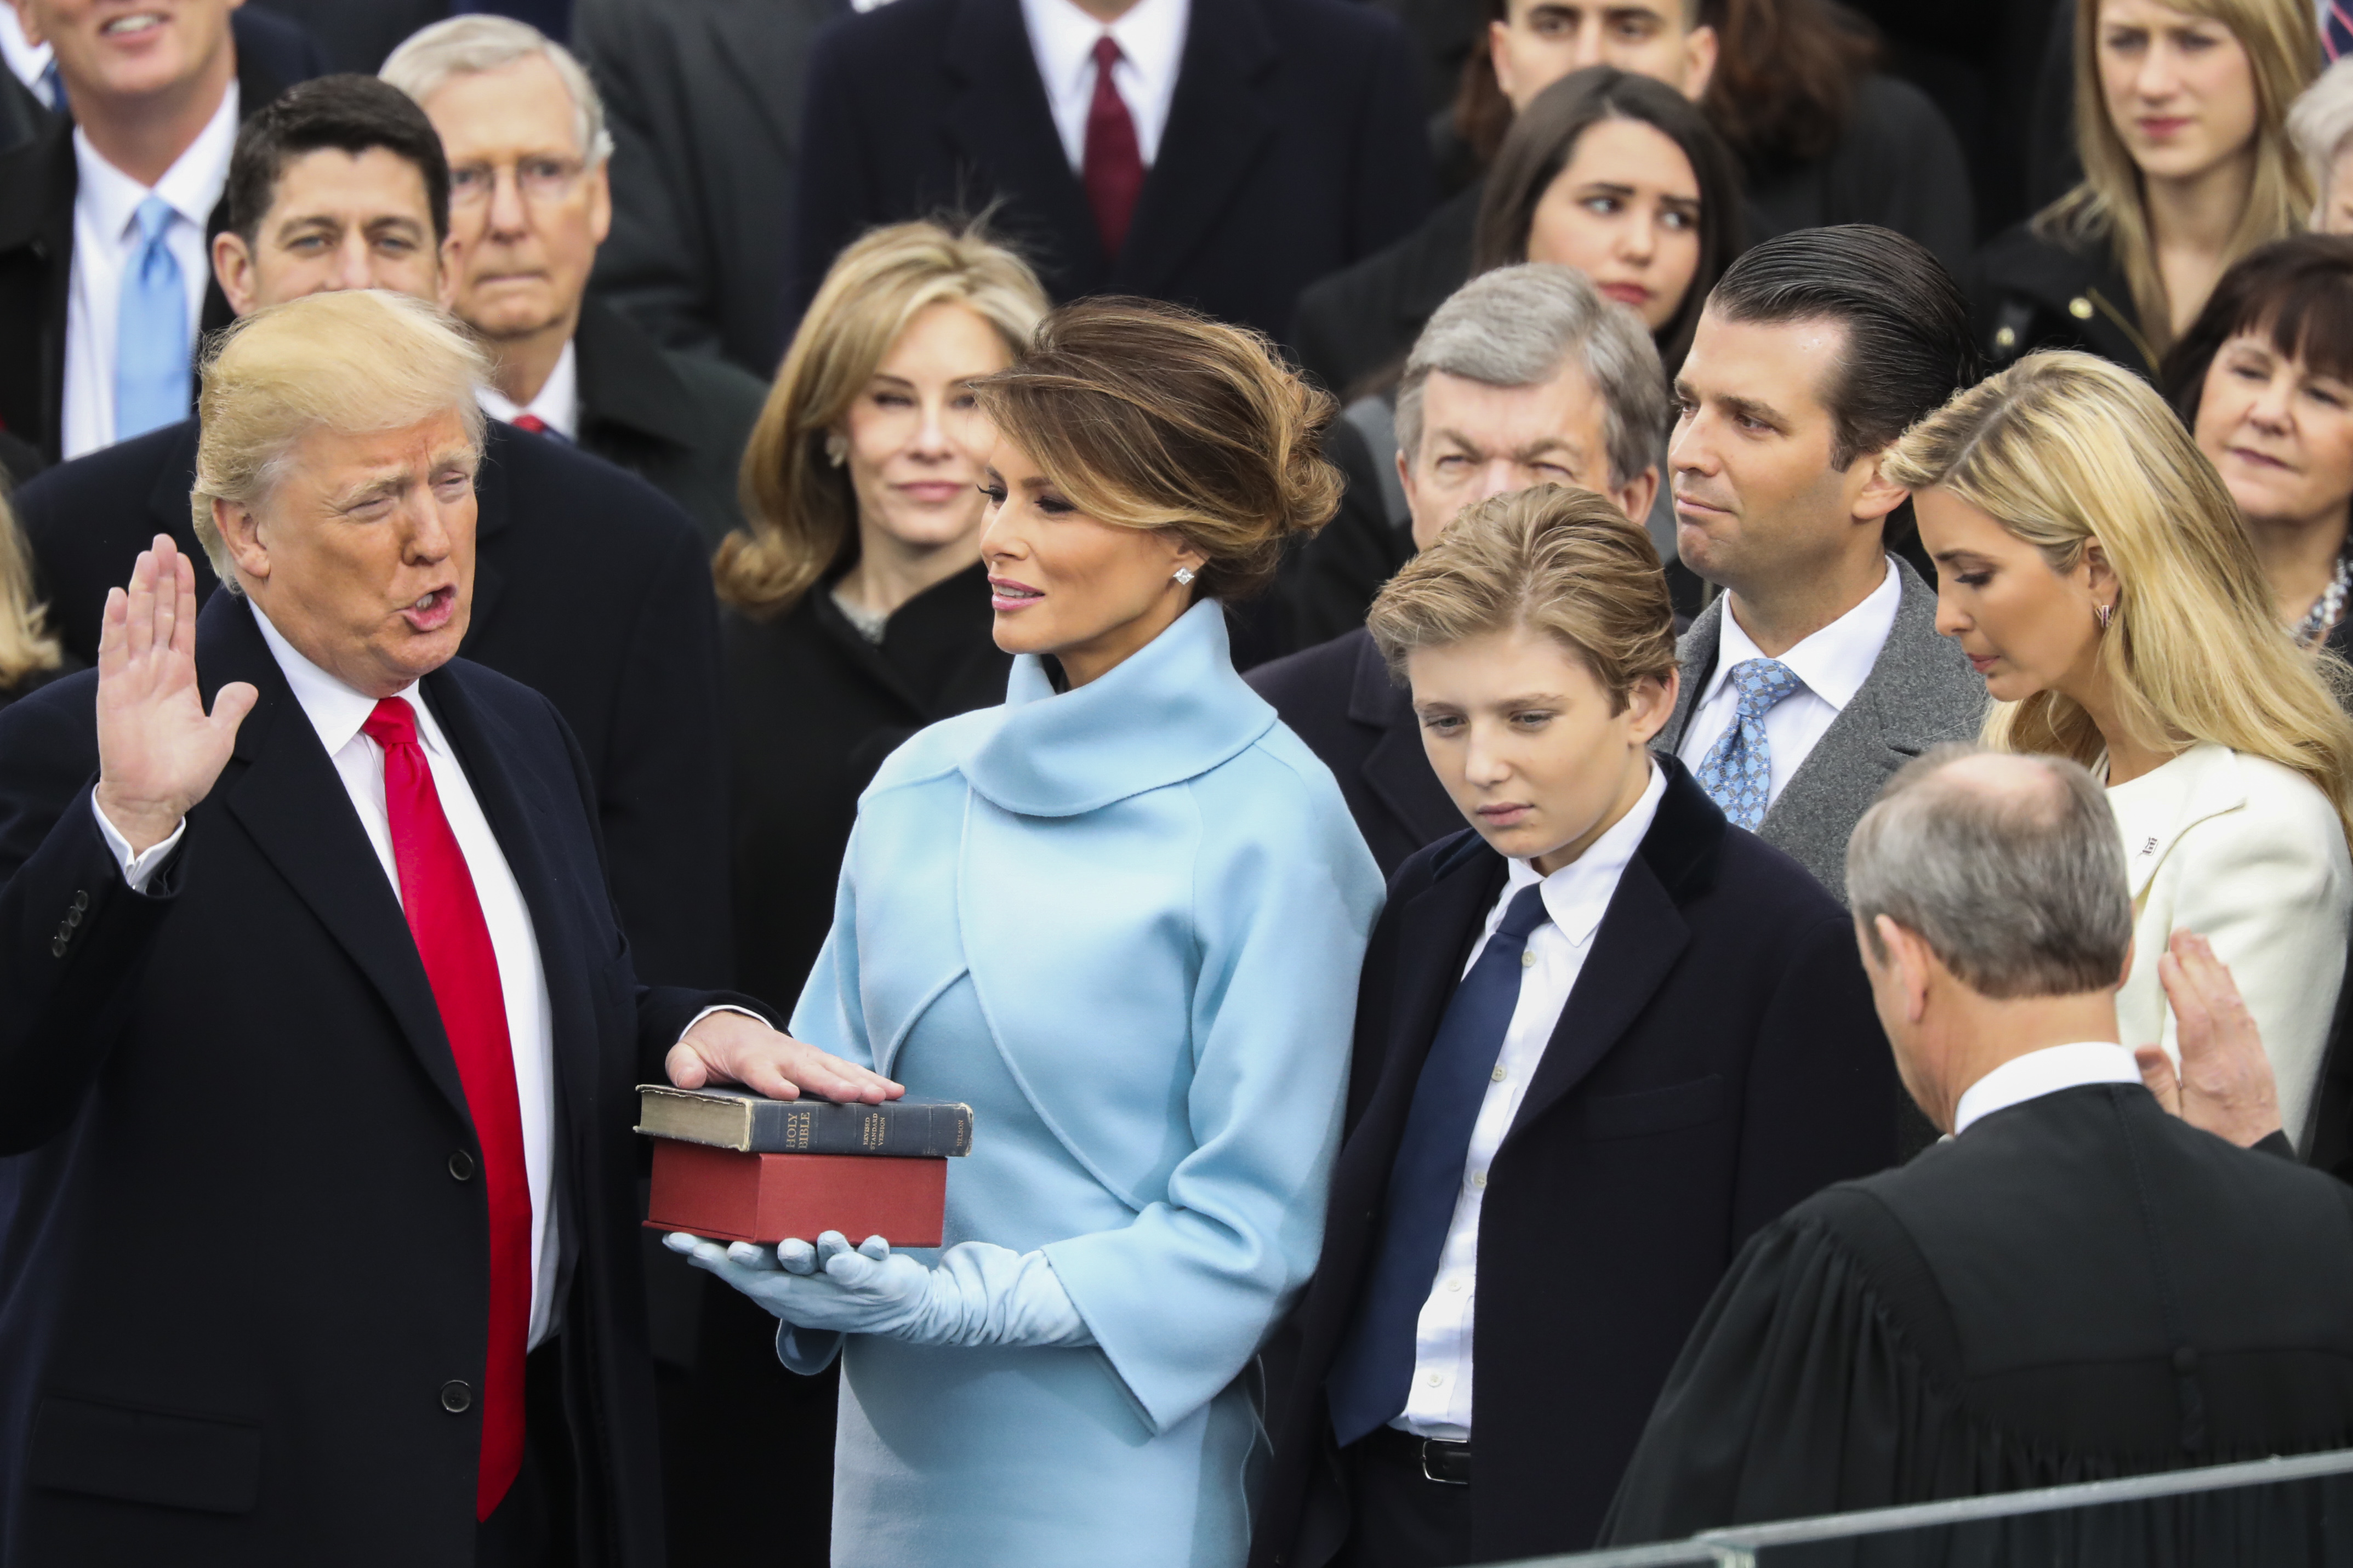 Image result for 45th presidential inauguration